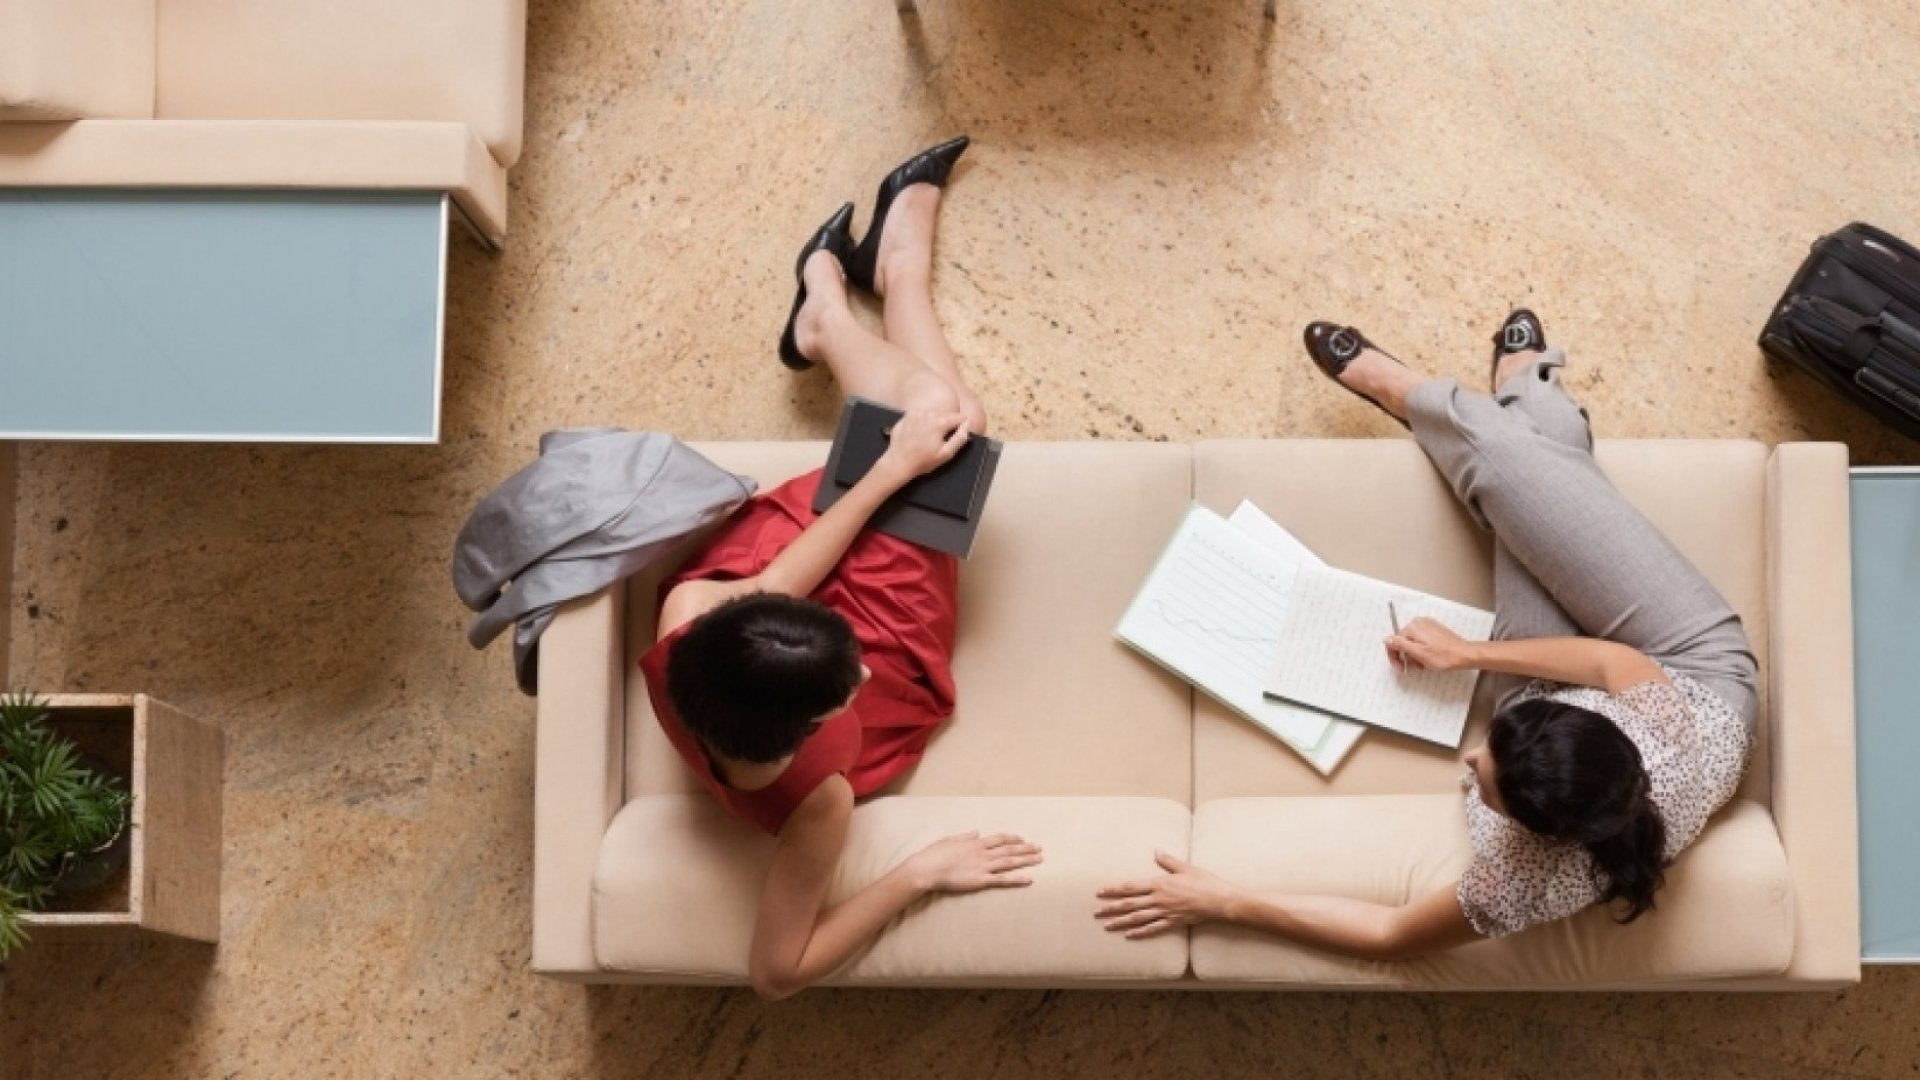 Transparency In Leadership: Why I Put a Couch in My Office